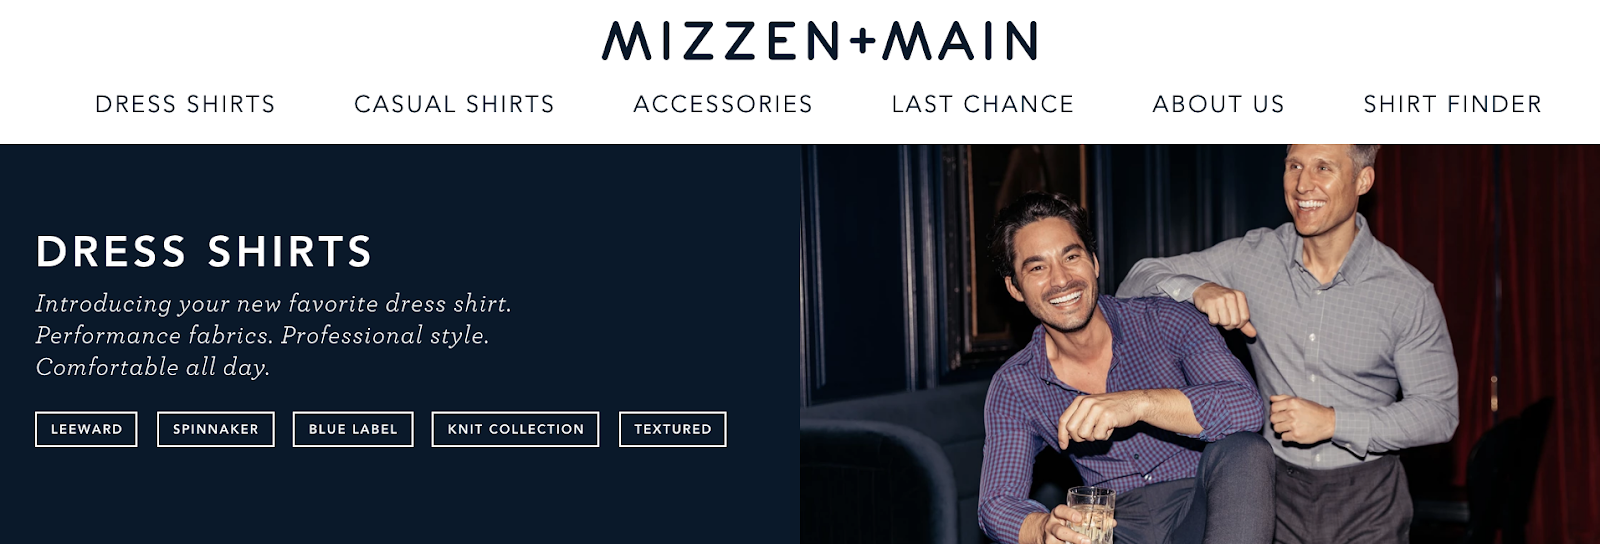 mizzenmain-unique-value-proposition